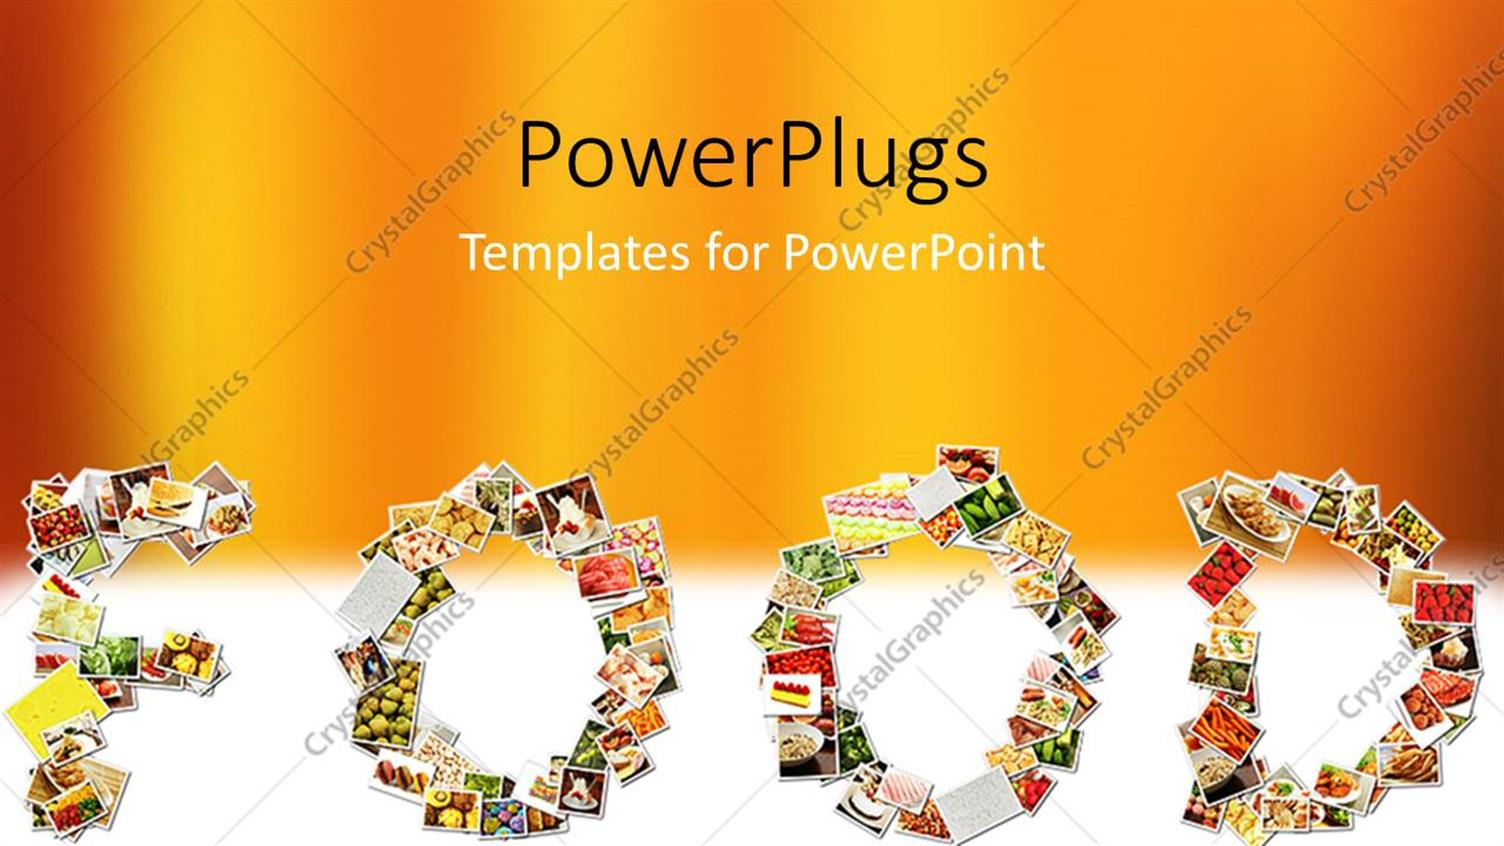 Indezine powerpoint templates choice image templates example indezine powerpoint templates images templates example free download 100 powerpoint food templates fruits and calories for toneelgroepblik Gallery